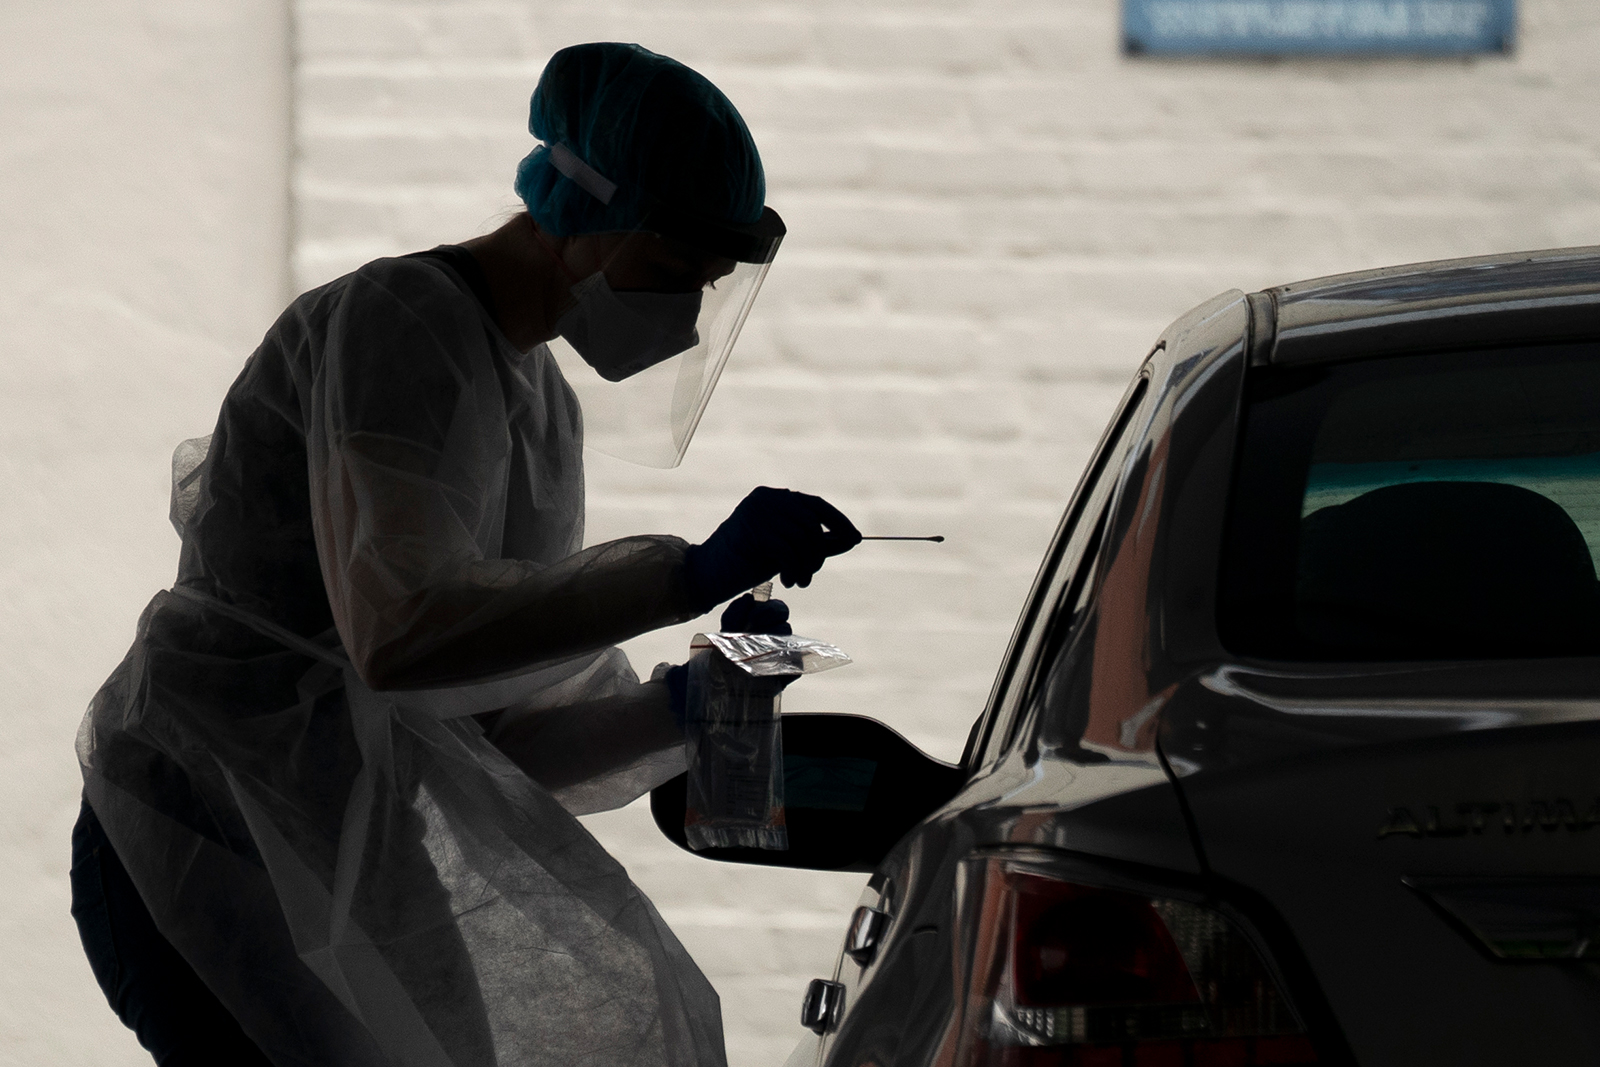 A medical professional administers a coronavirus test at a drive-thru testing site run by George Washington University Hospital, on May 26, in Washington, DC.